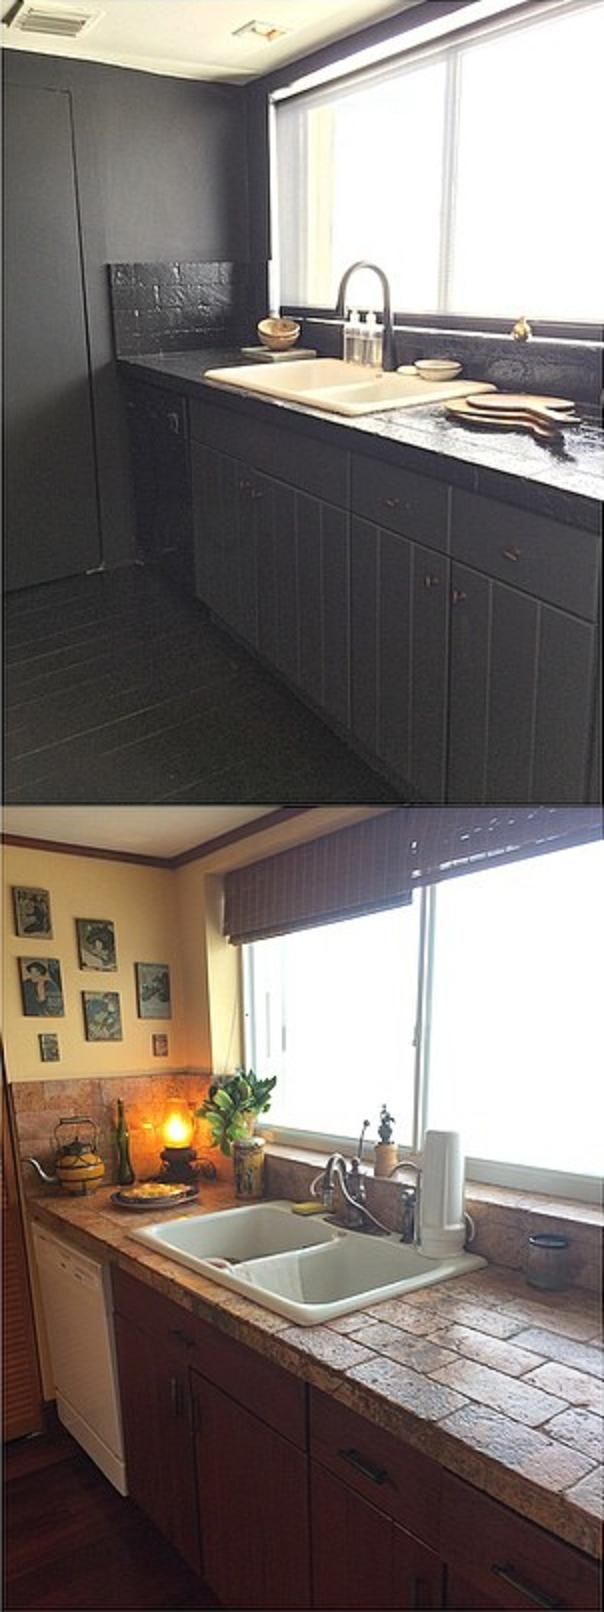 Epoxy Cabinet Paint 25 Best Ideas About High Gloss Kitchen Cabinets On Pinterest